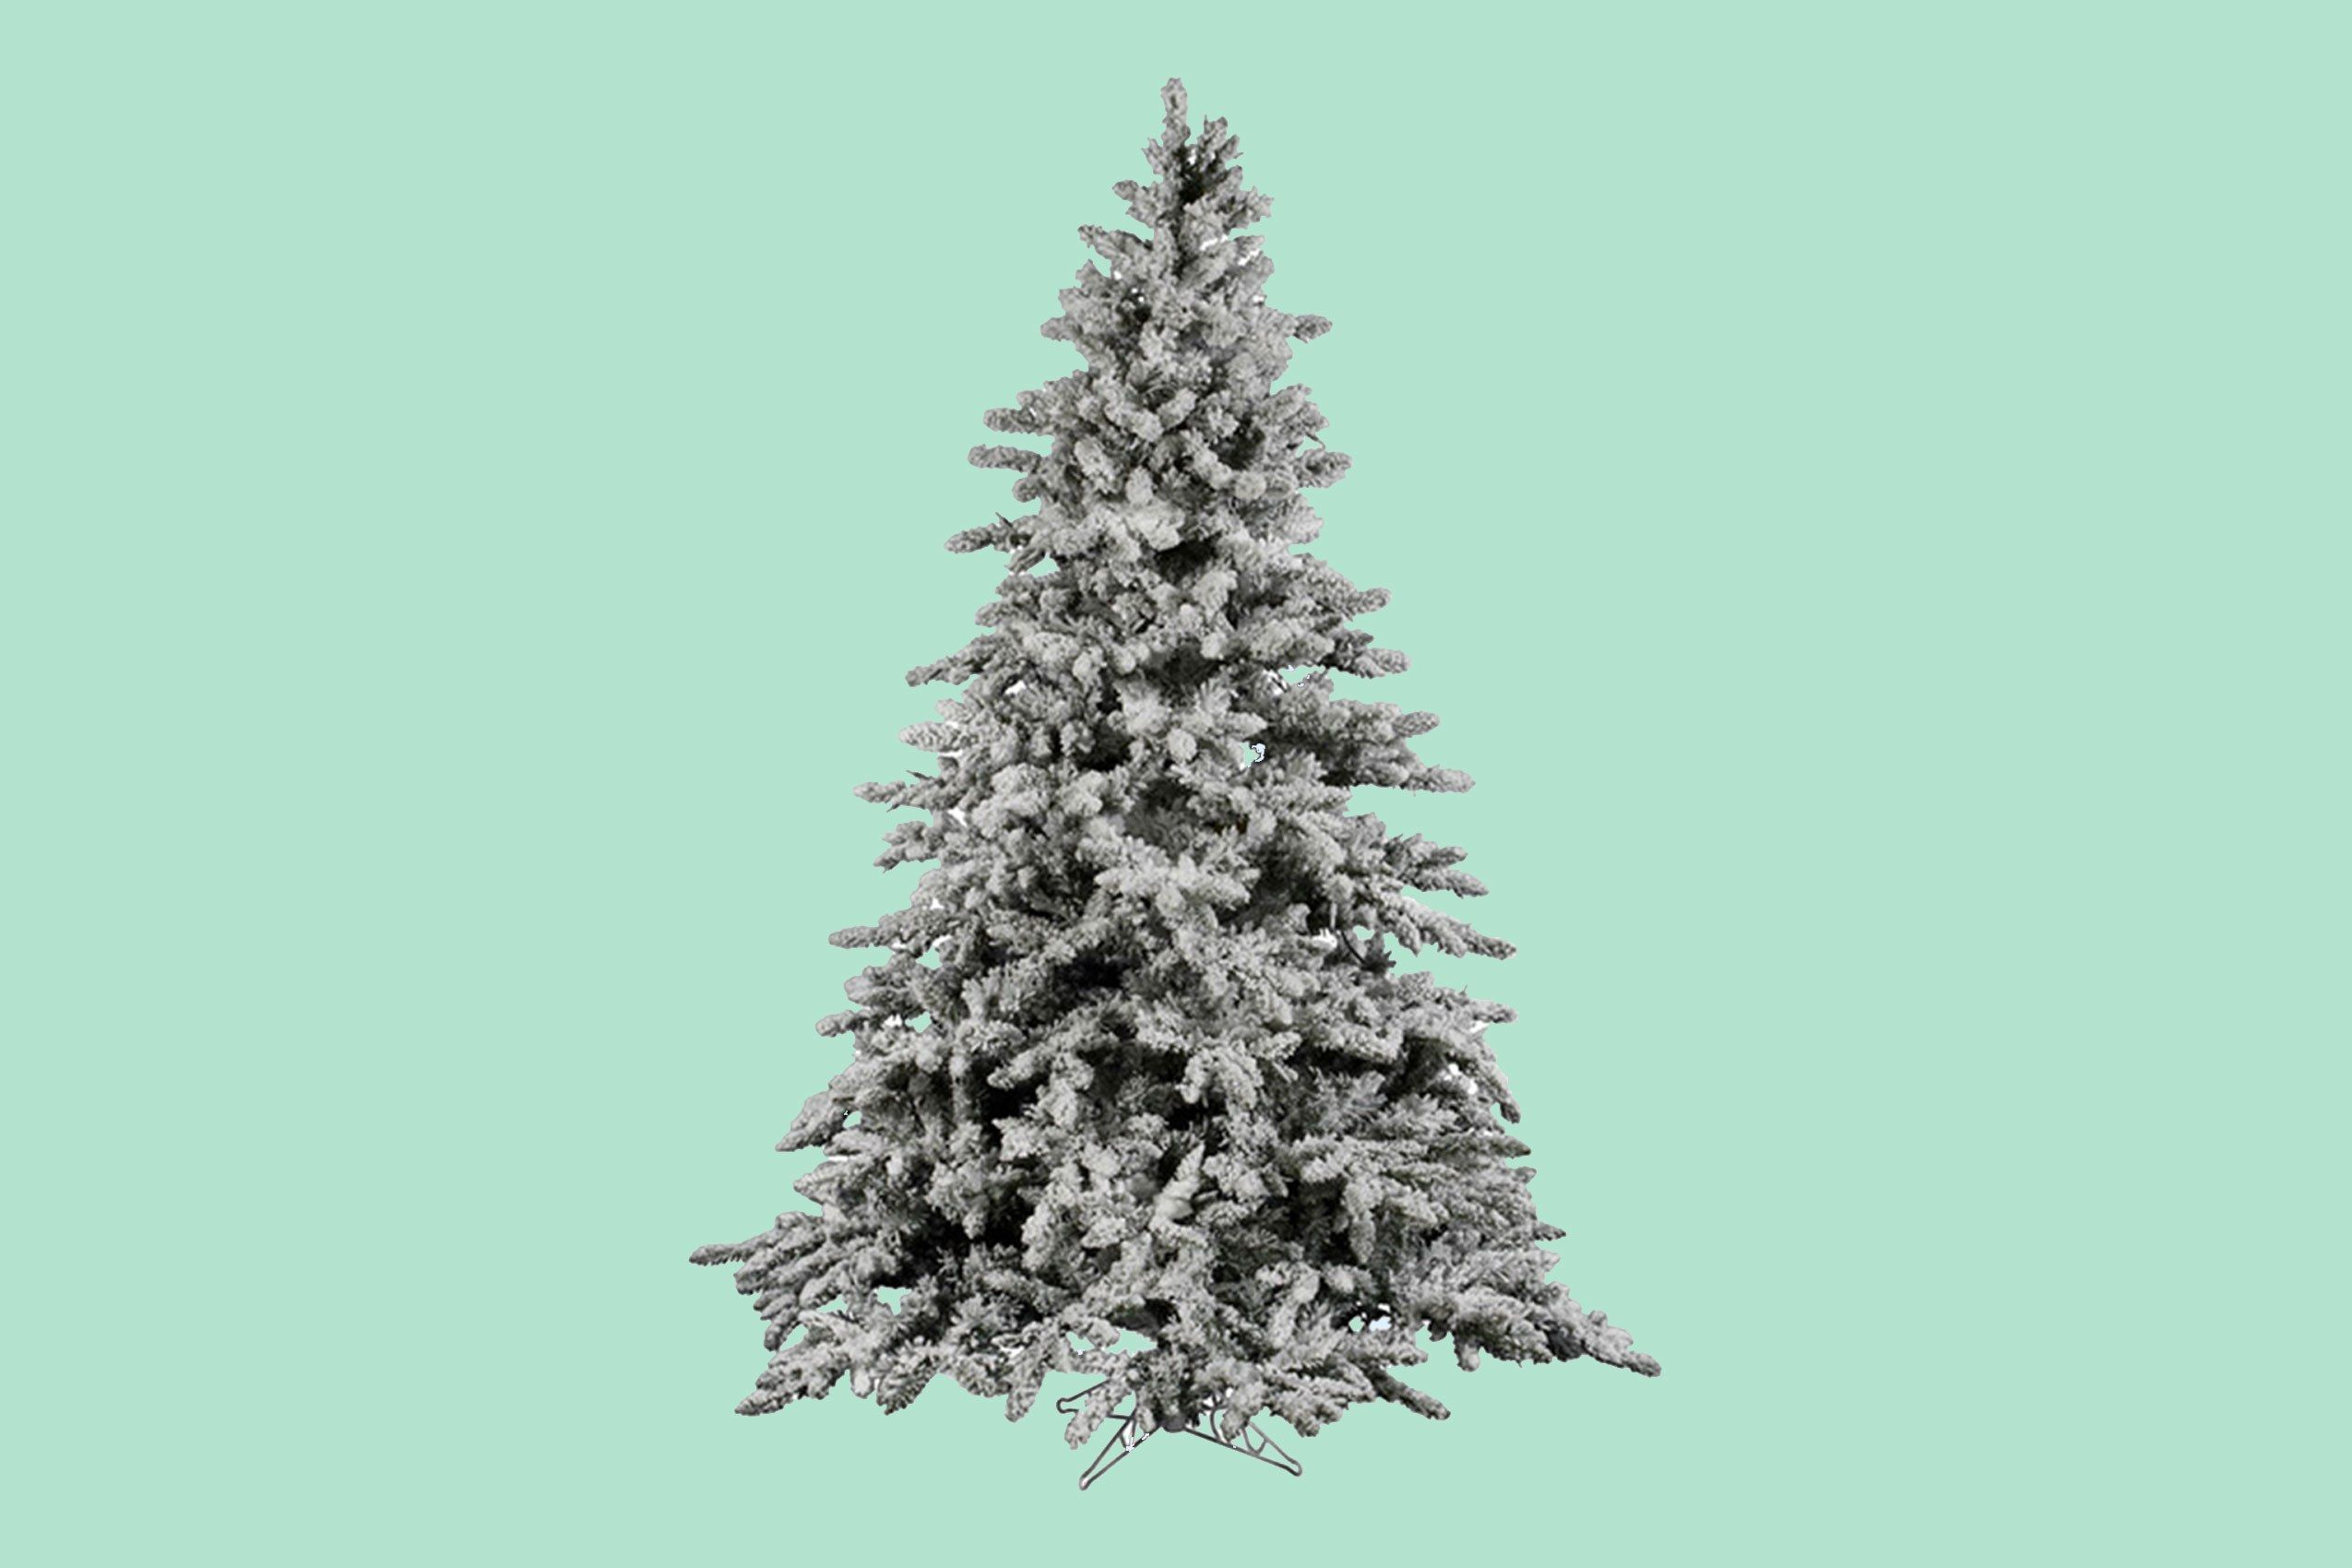 15 Best Artificial Christmas Trees And Tips To Make Them Look Real Best Artificial Christmas Trees Small Christmas Trees Decorated Small Artificial Christmas Trees